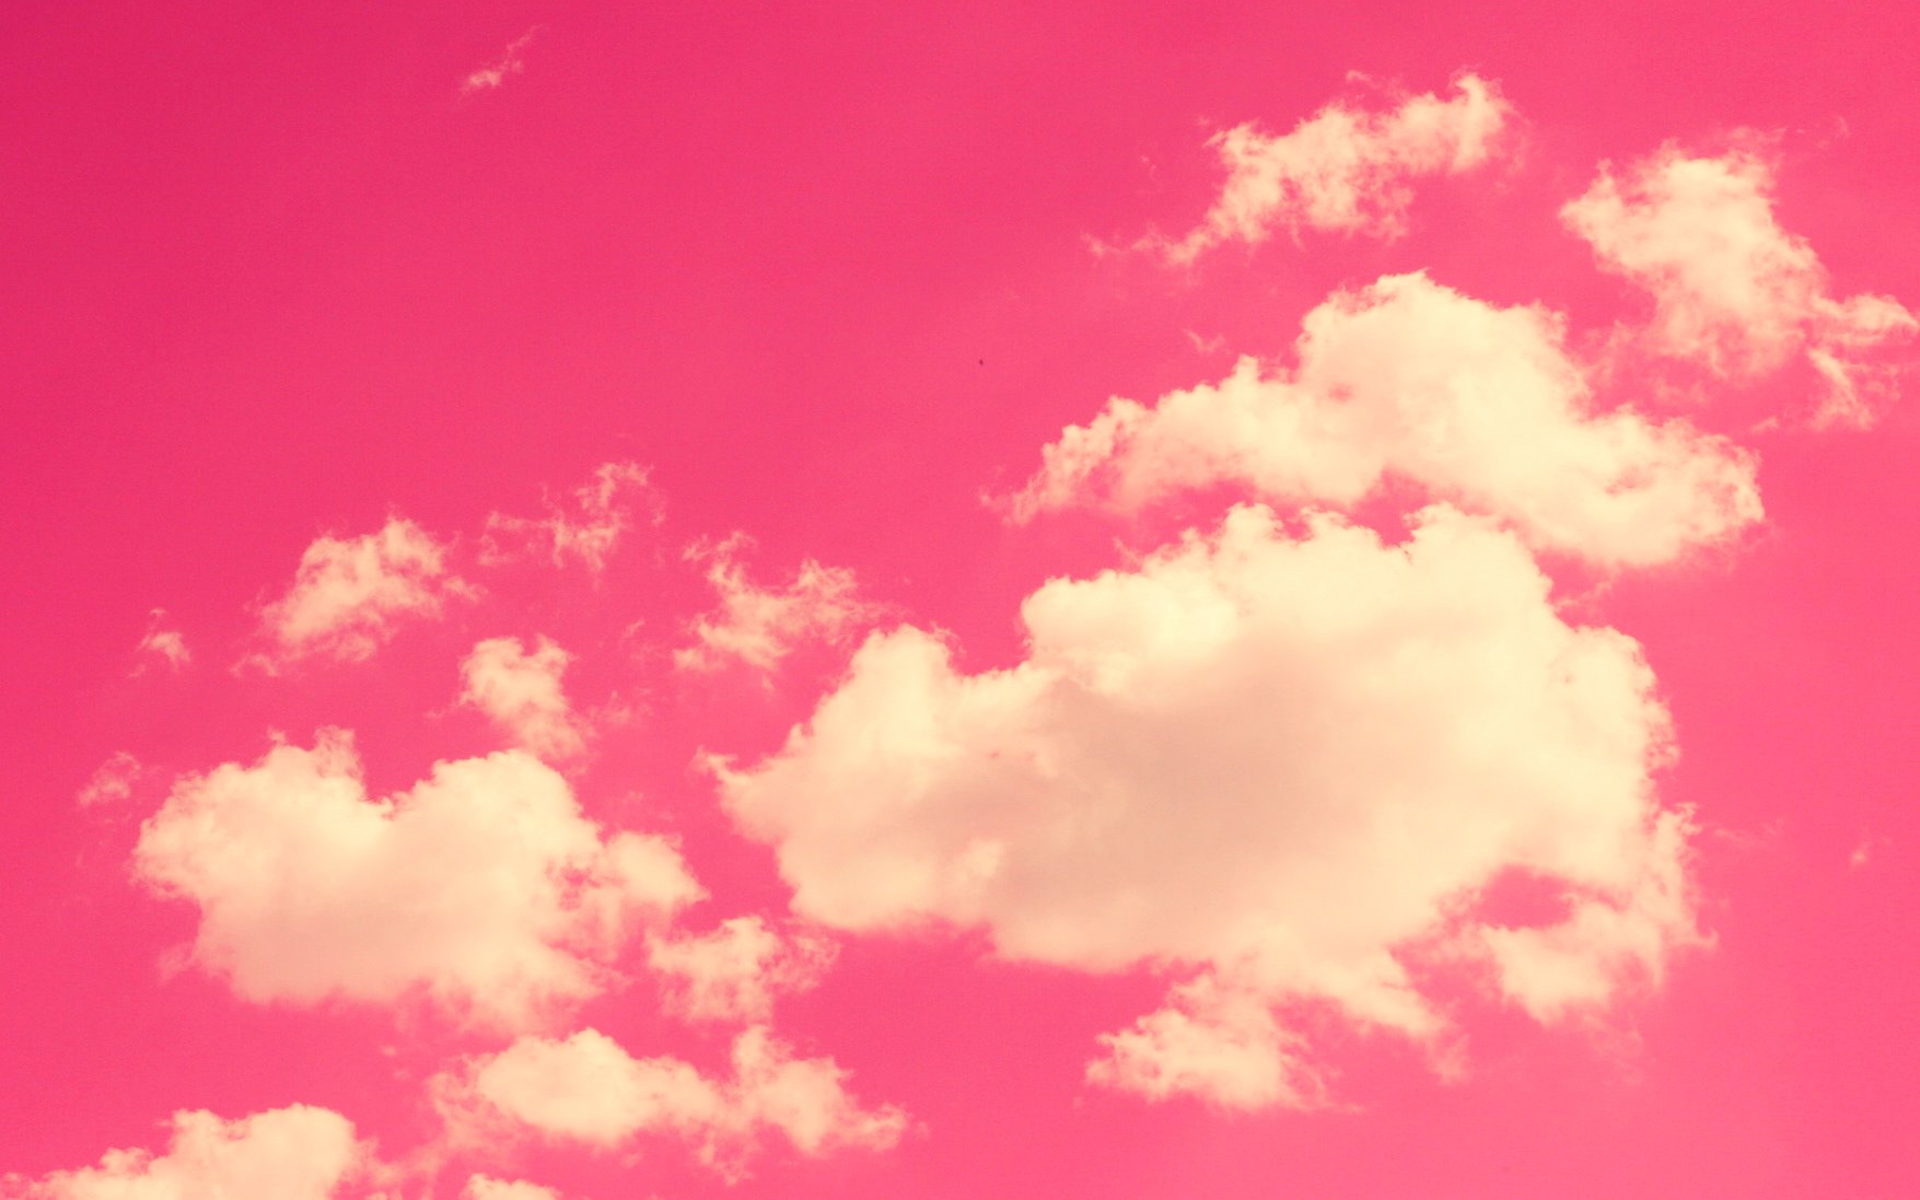 Pink Cloud wallpaper | 1920x1200 | 38228 | WallpaperUP